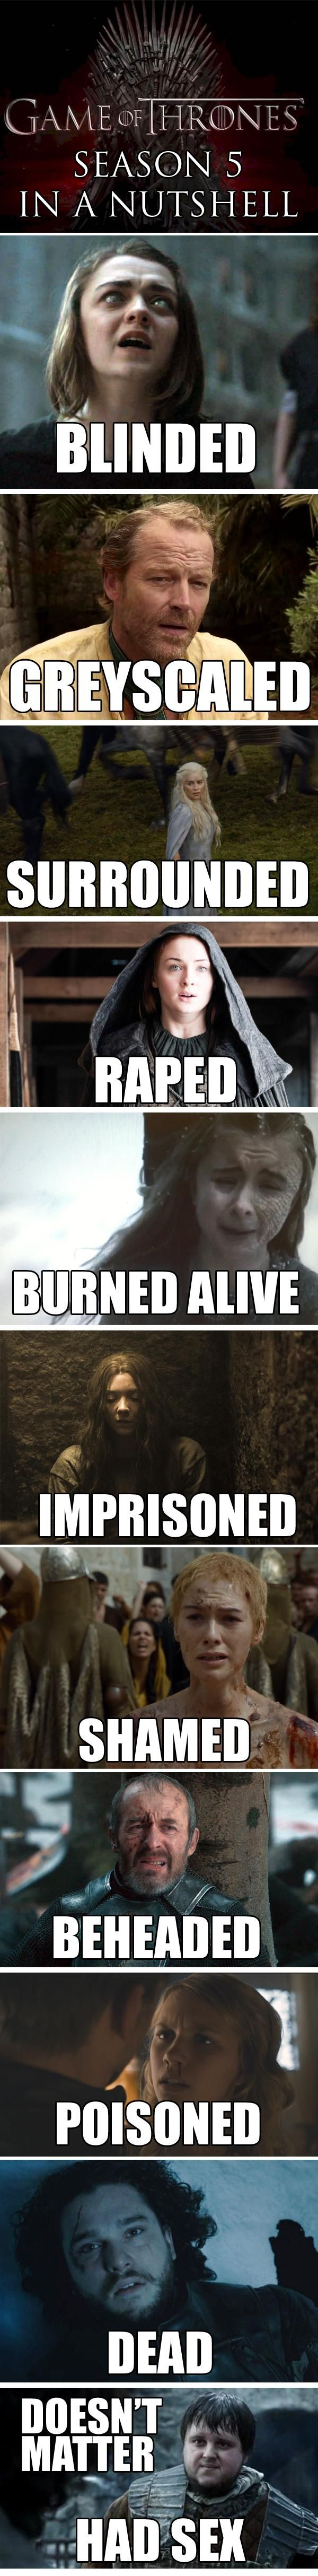 Game of Thrones Season 5 in a Nutshell